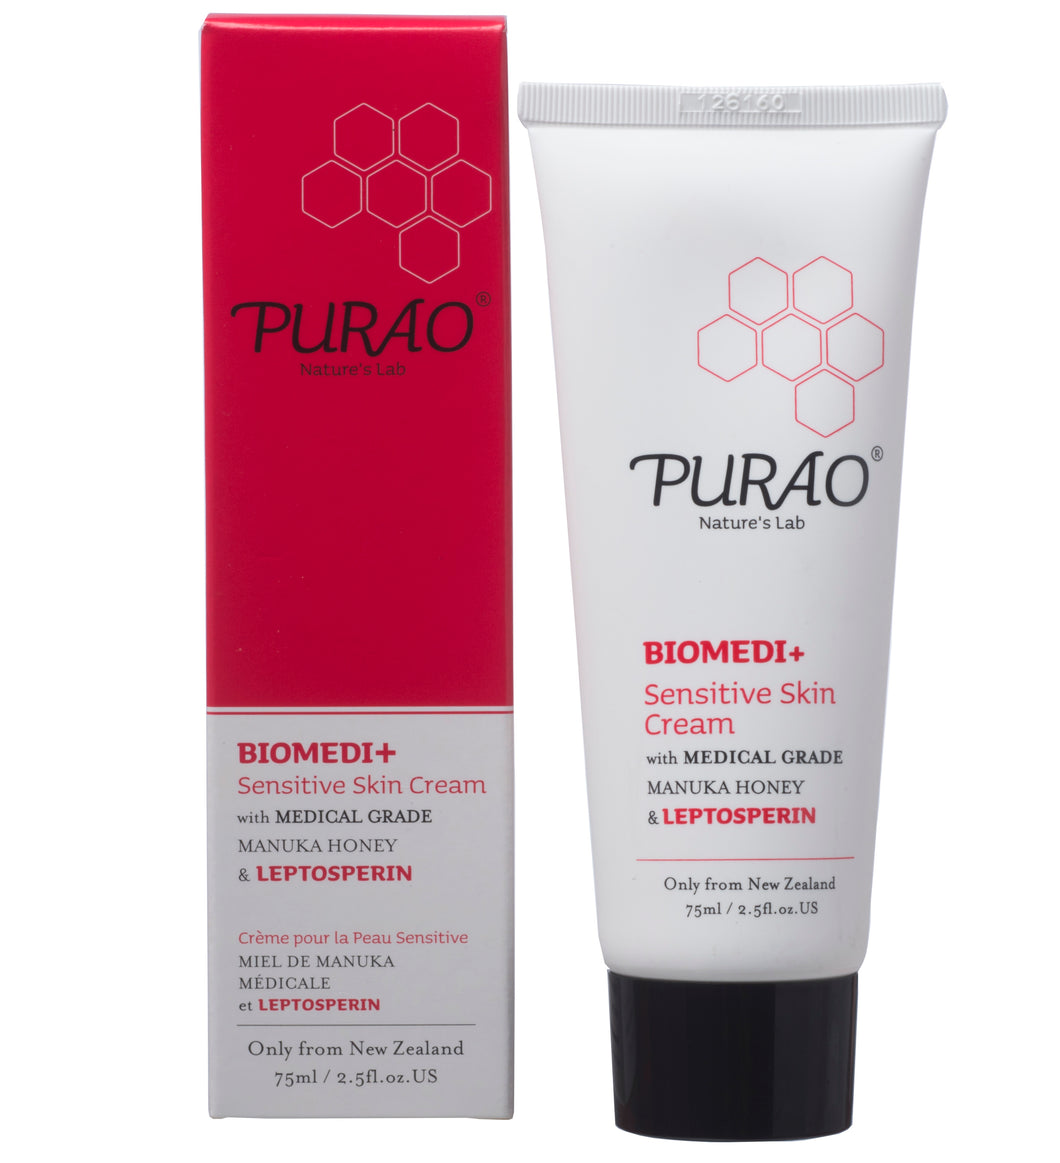 PURAO BIOMEDI+ Sensitive Skin Cream